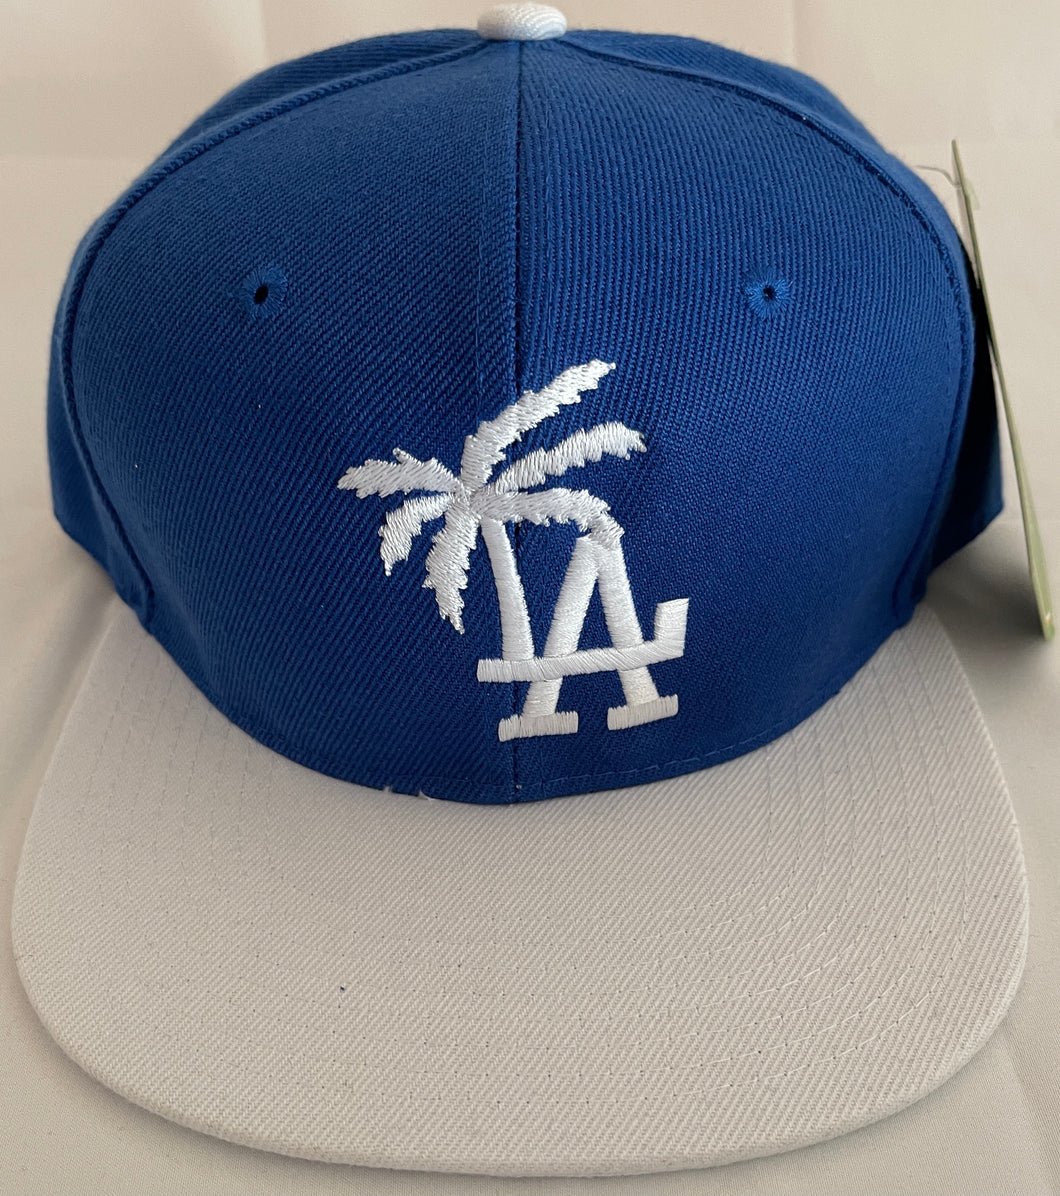 LOS ANGELES DODGERS PALM TREE SNAP BACK BASEBALL HAT